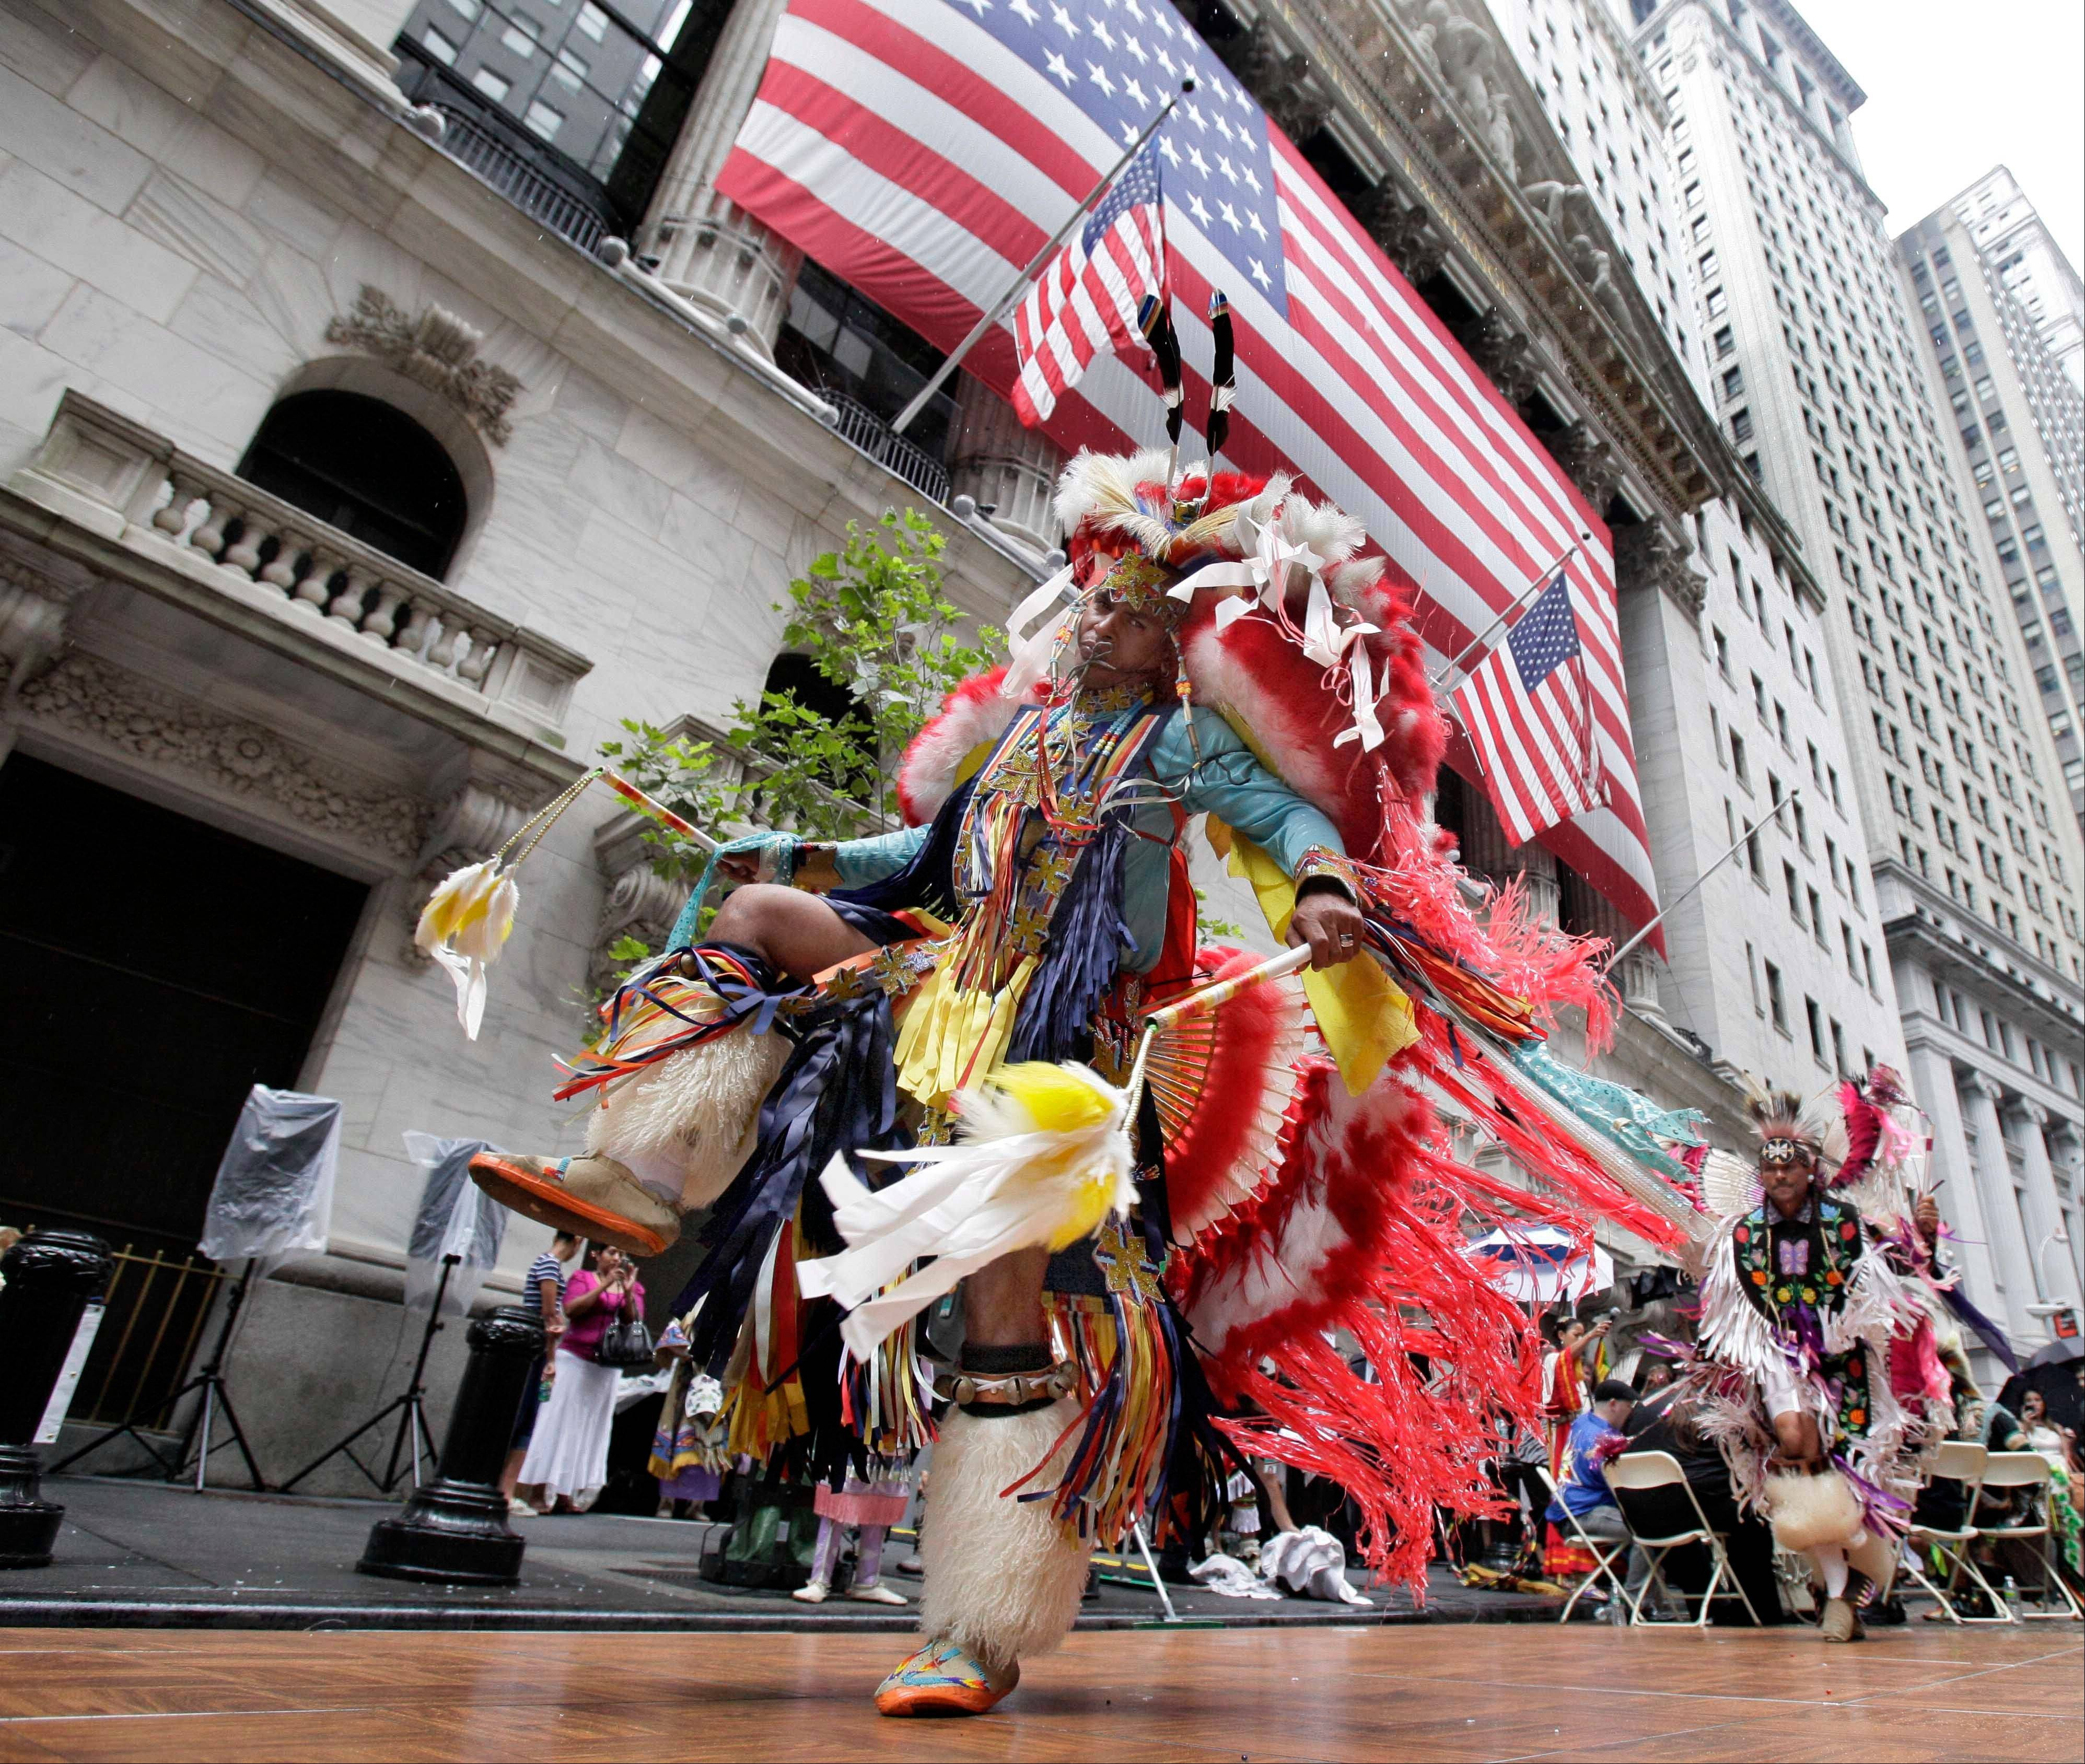 Waya Richardson, of the Tuscarora tribe, dances outside the New York Stock Exchange Thursday during the ceremonies celebrating NativeOne becoming the exchange's first Native American-owned member. Stocks seem to have stabilized last week.